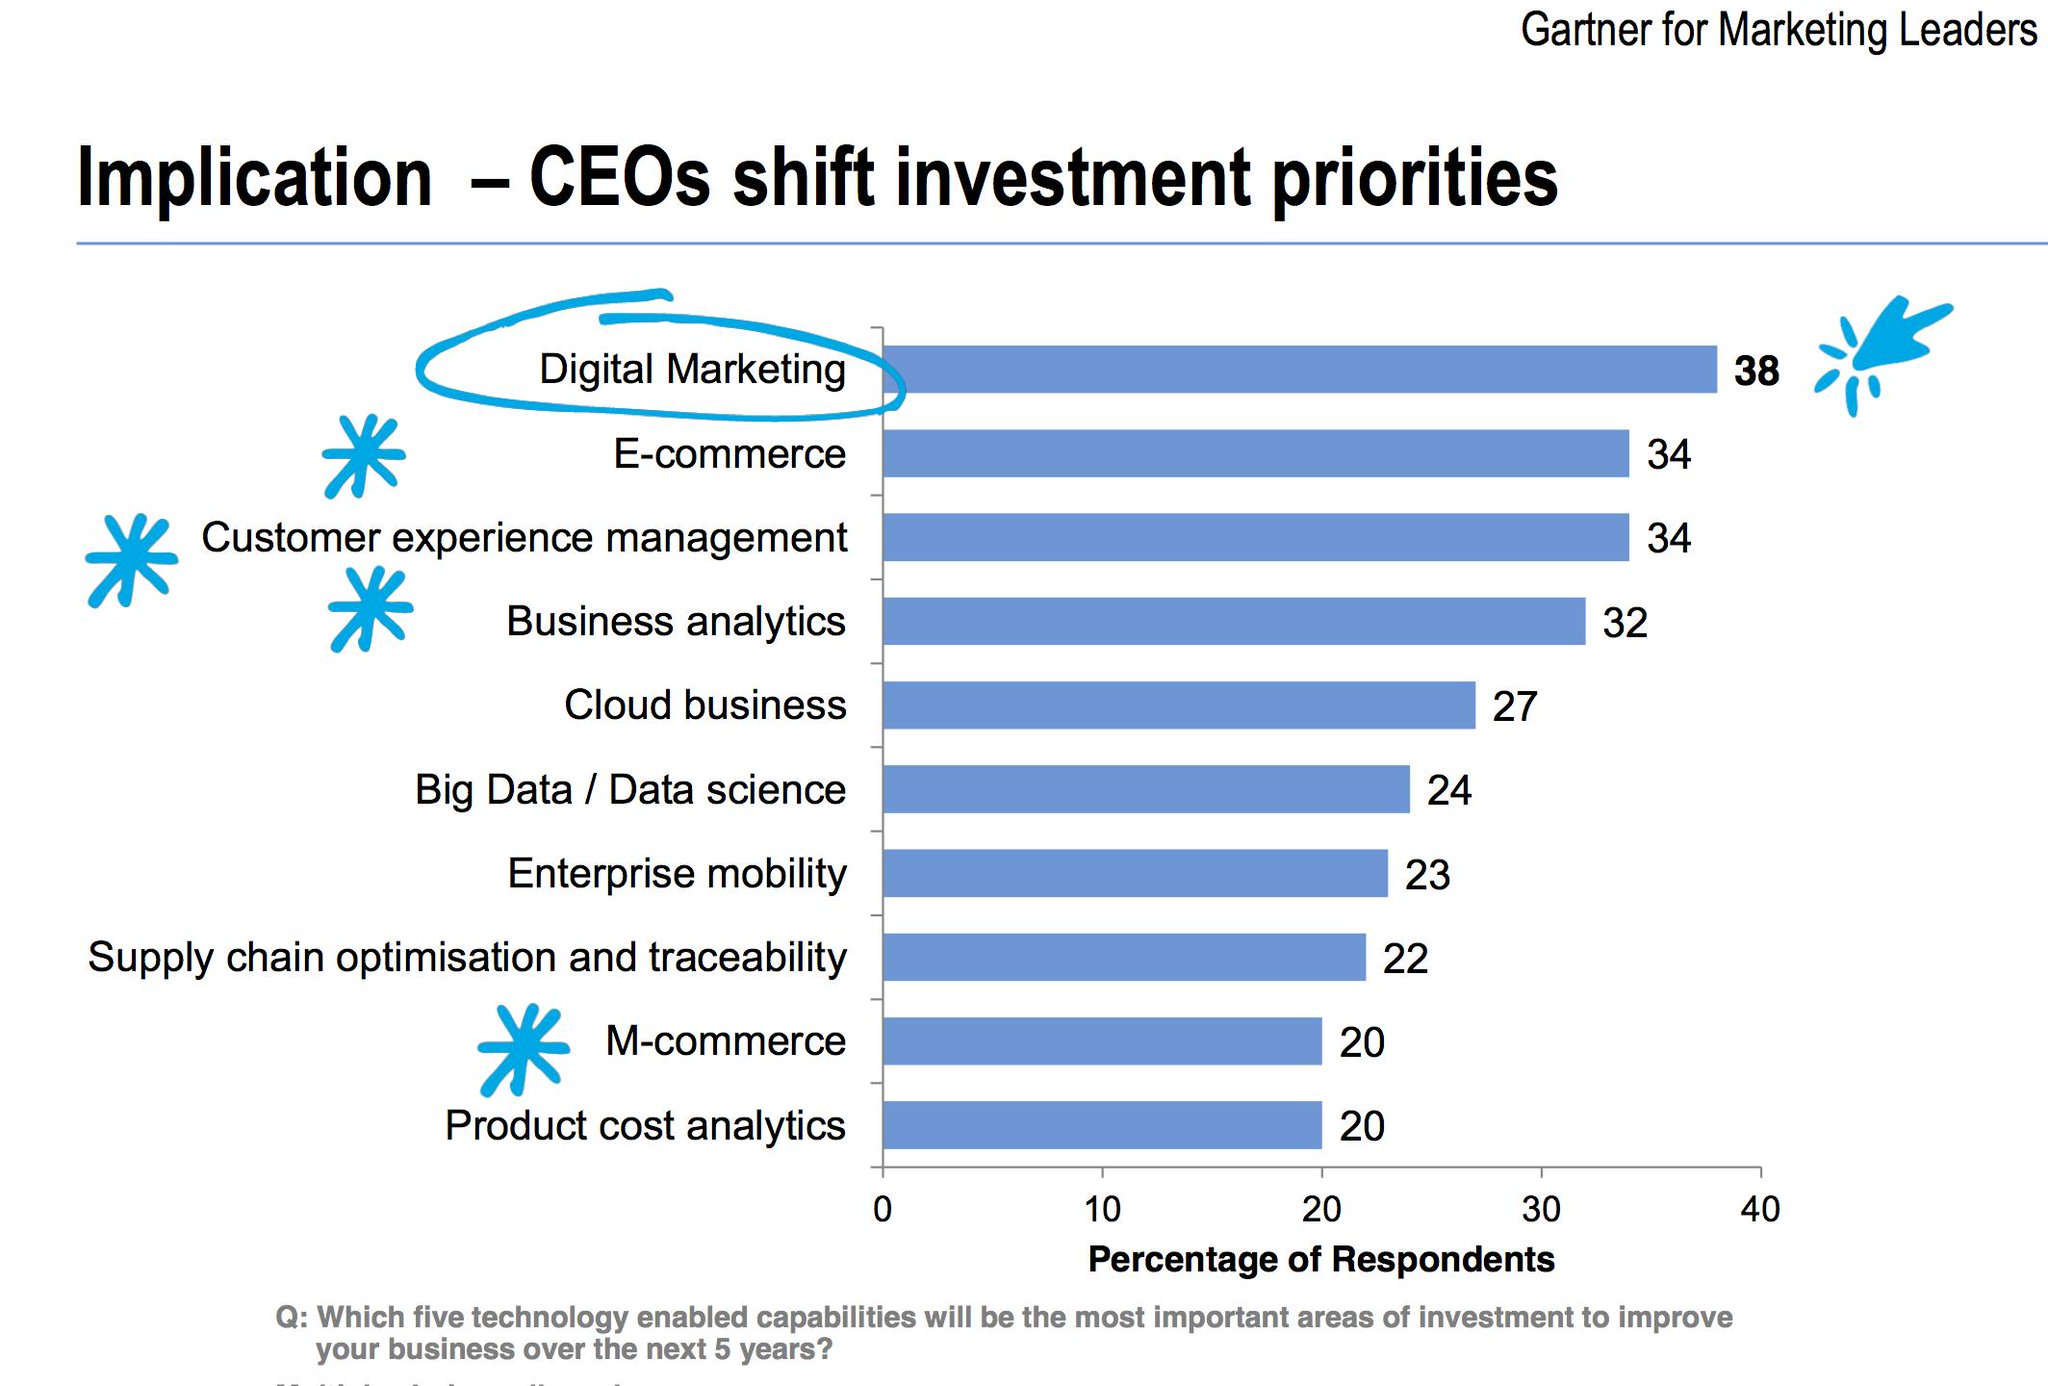 RT @cspenn: 38% of CEOs @Gartner interviewed have shifted investment priorities to digital marketing. @lauramclellan #MarTech http://t.co/L…